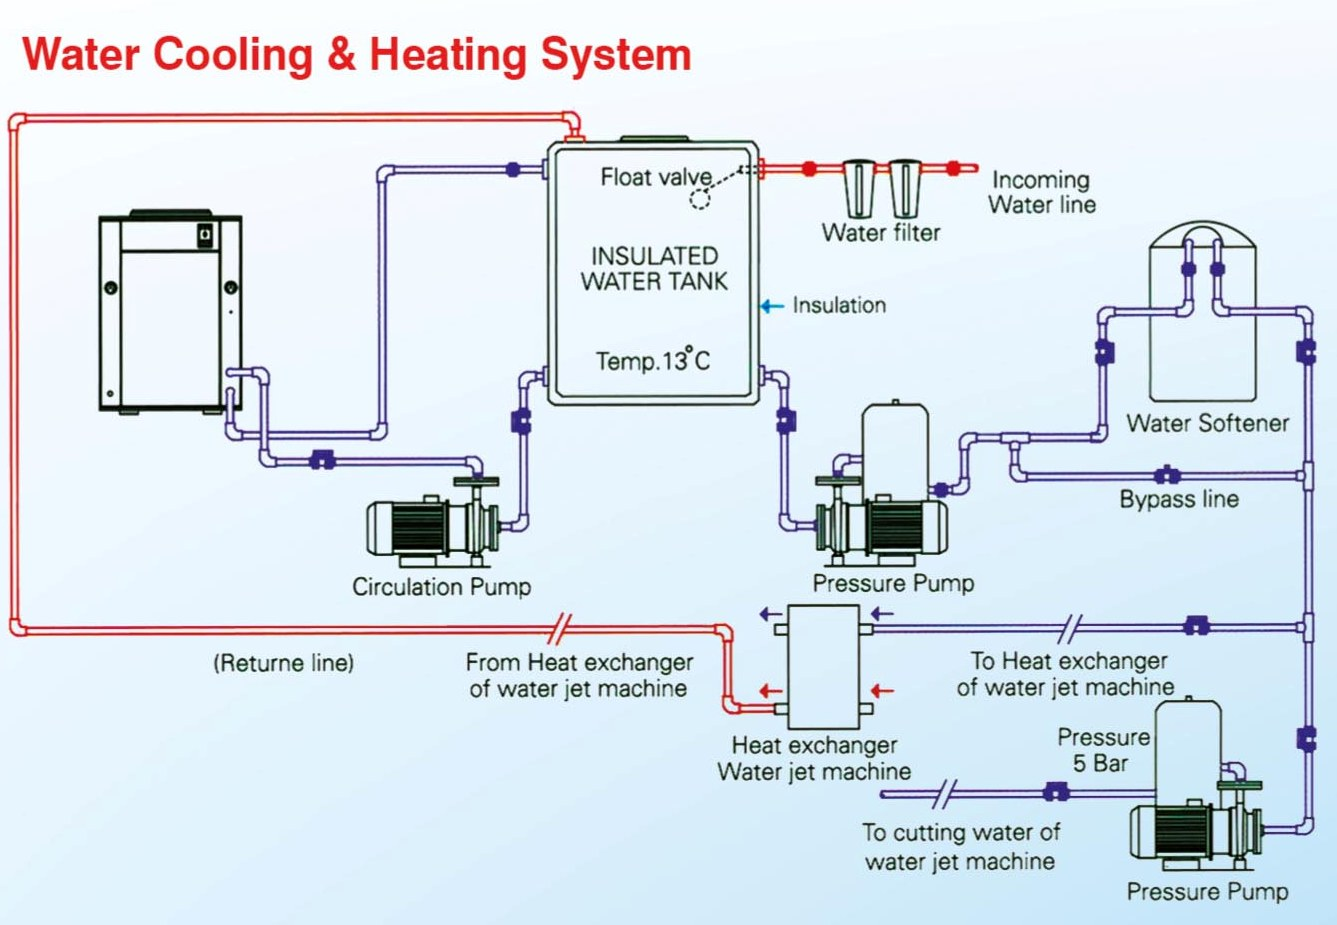 Water Cooling & Heating System